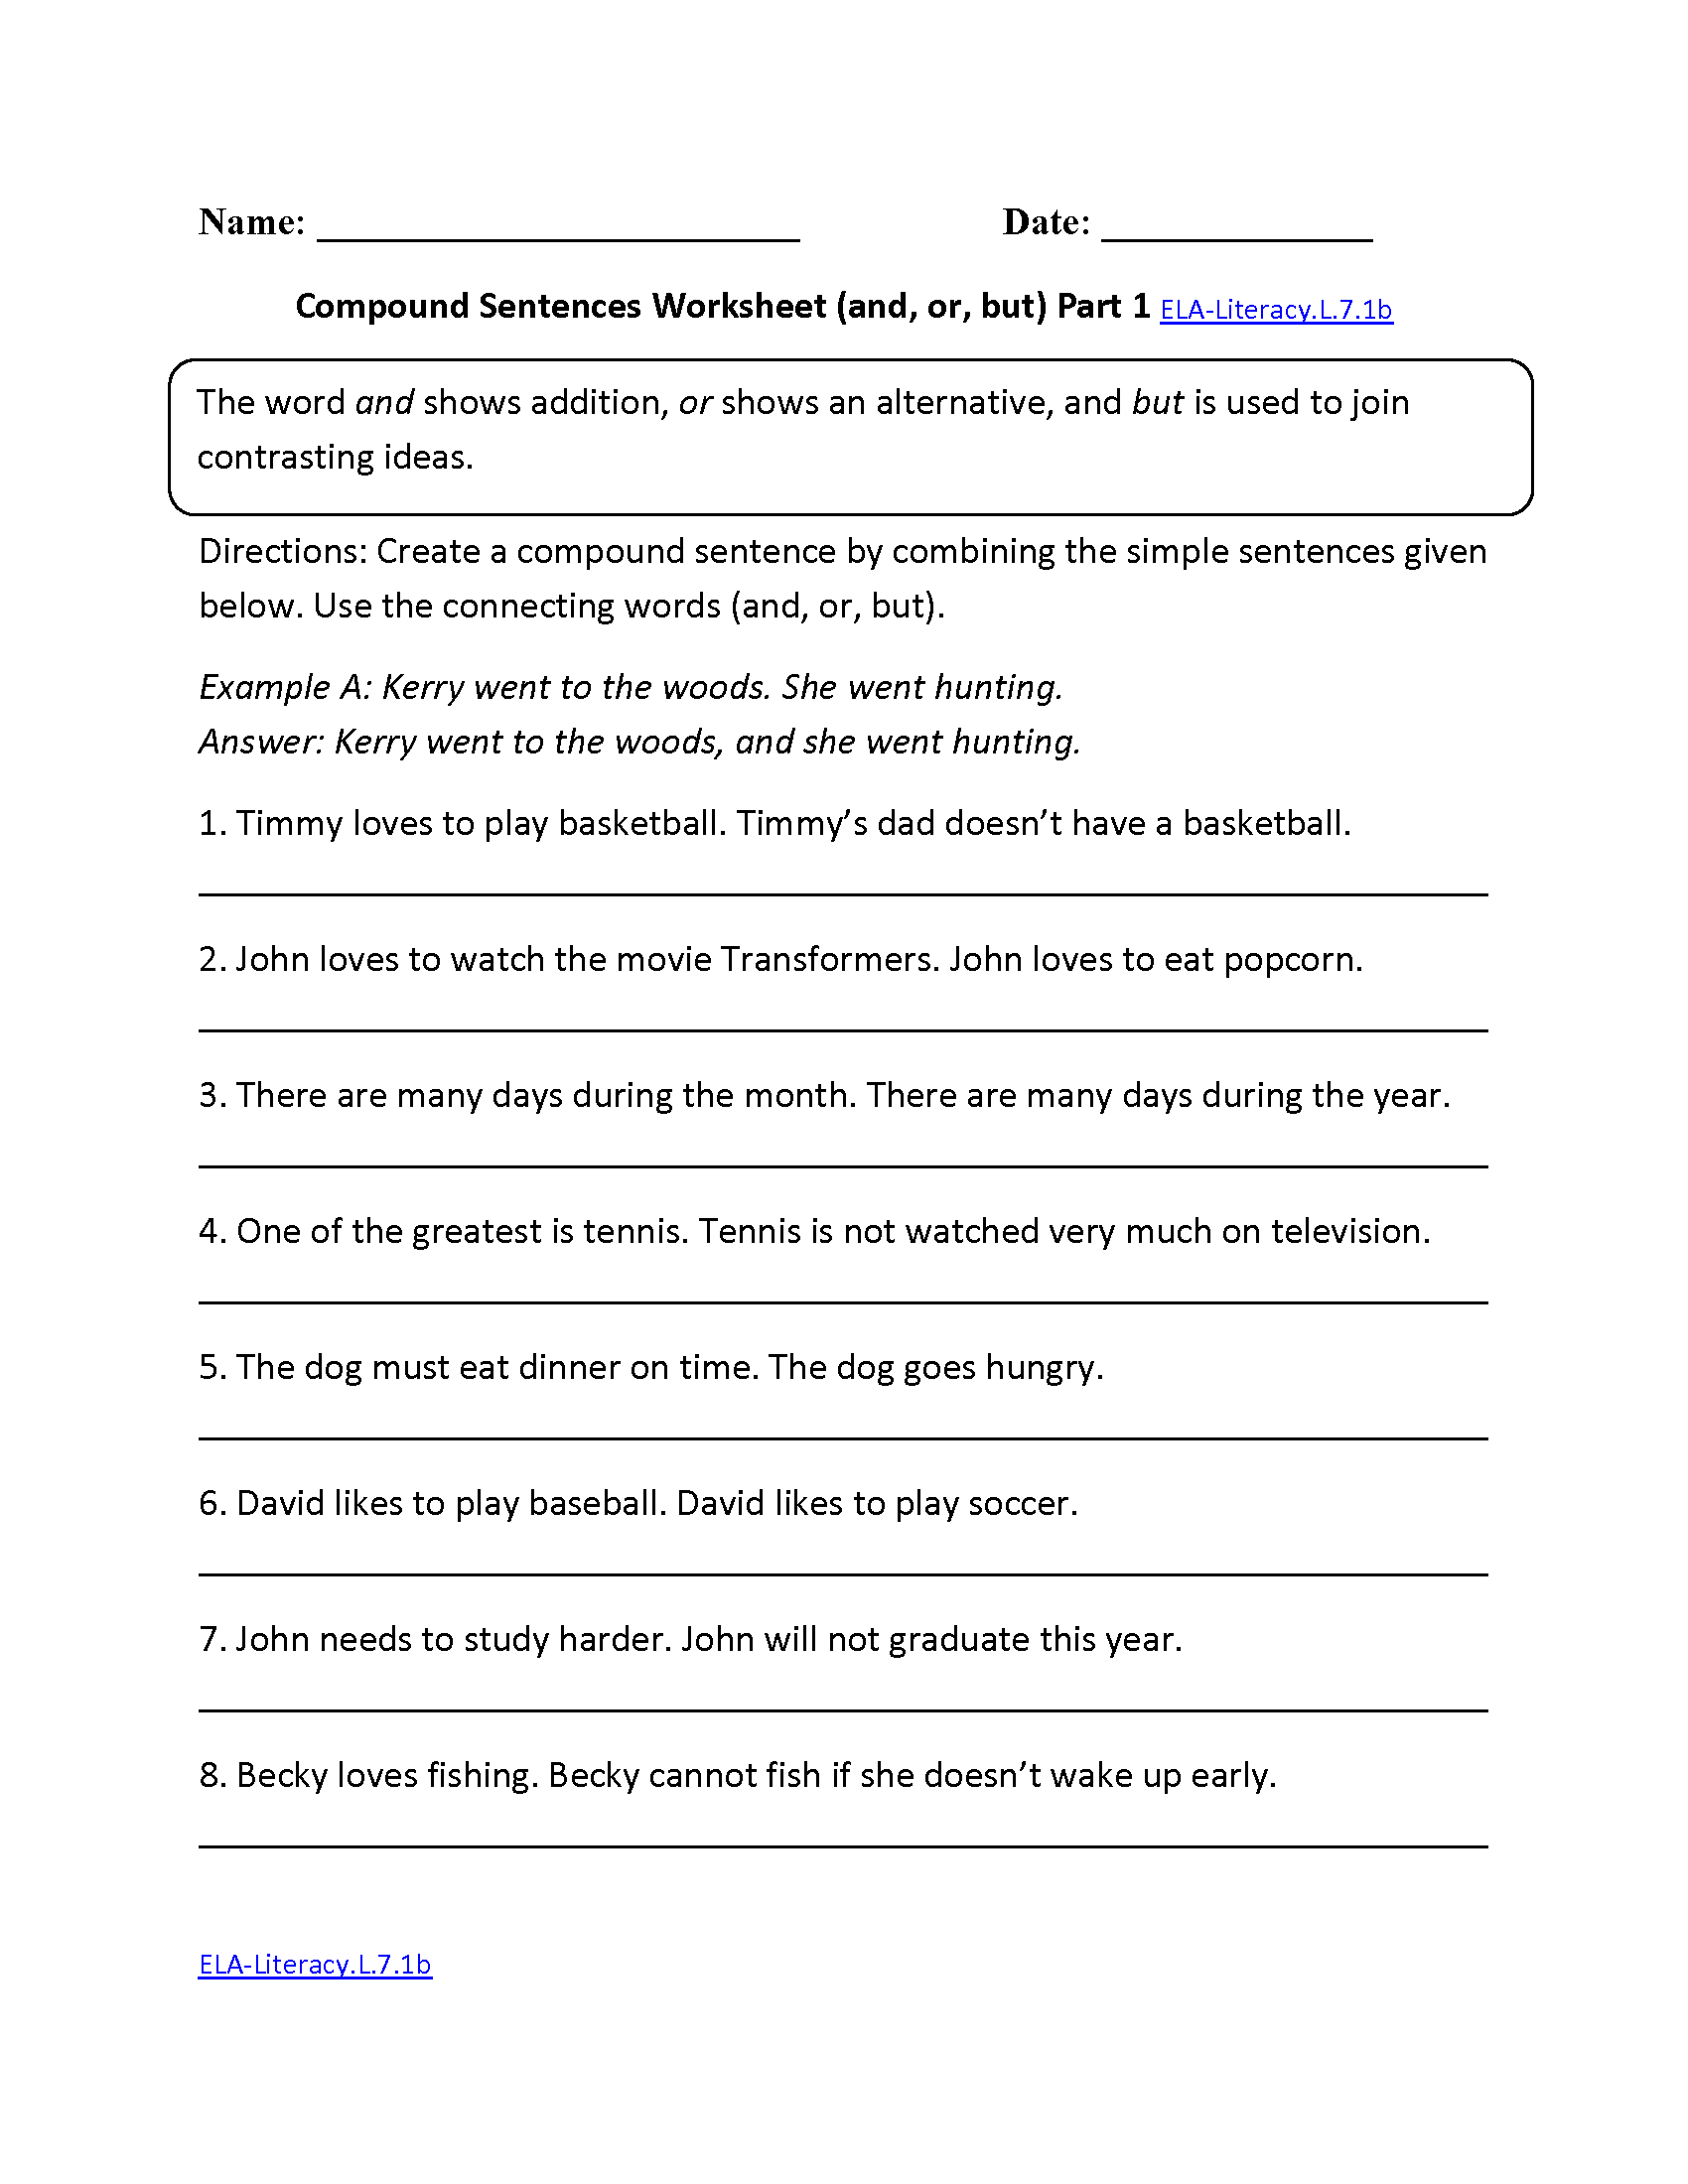 Printables Common Core Grammar Worksheets 7th grade common core language worksheets compound sentences worksheet ela literacy l 7 1b worksheet